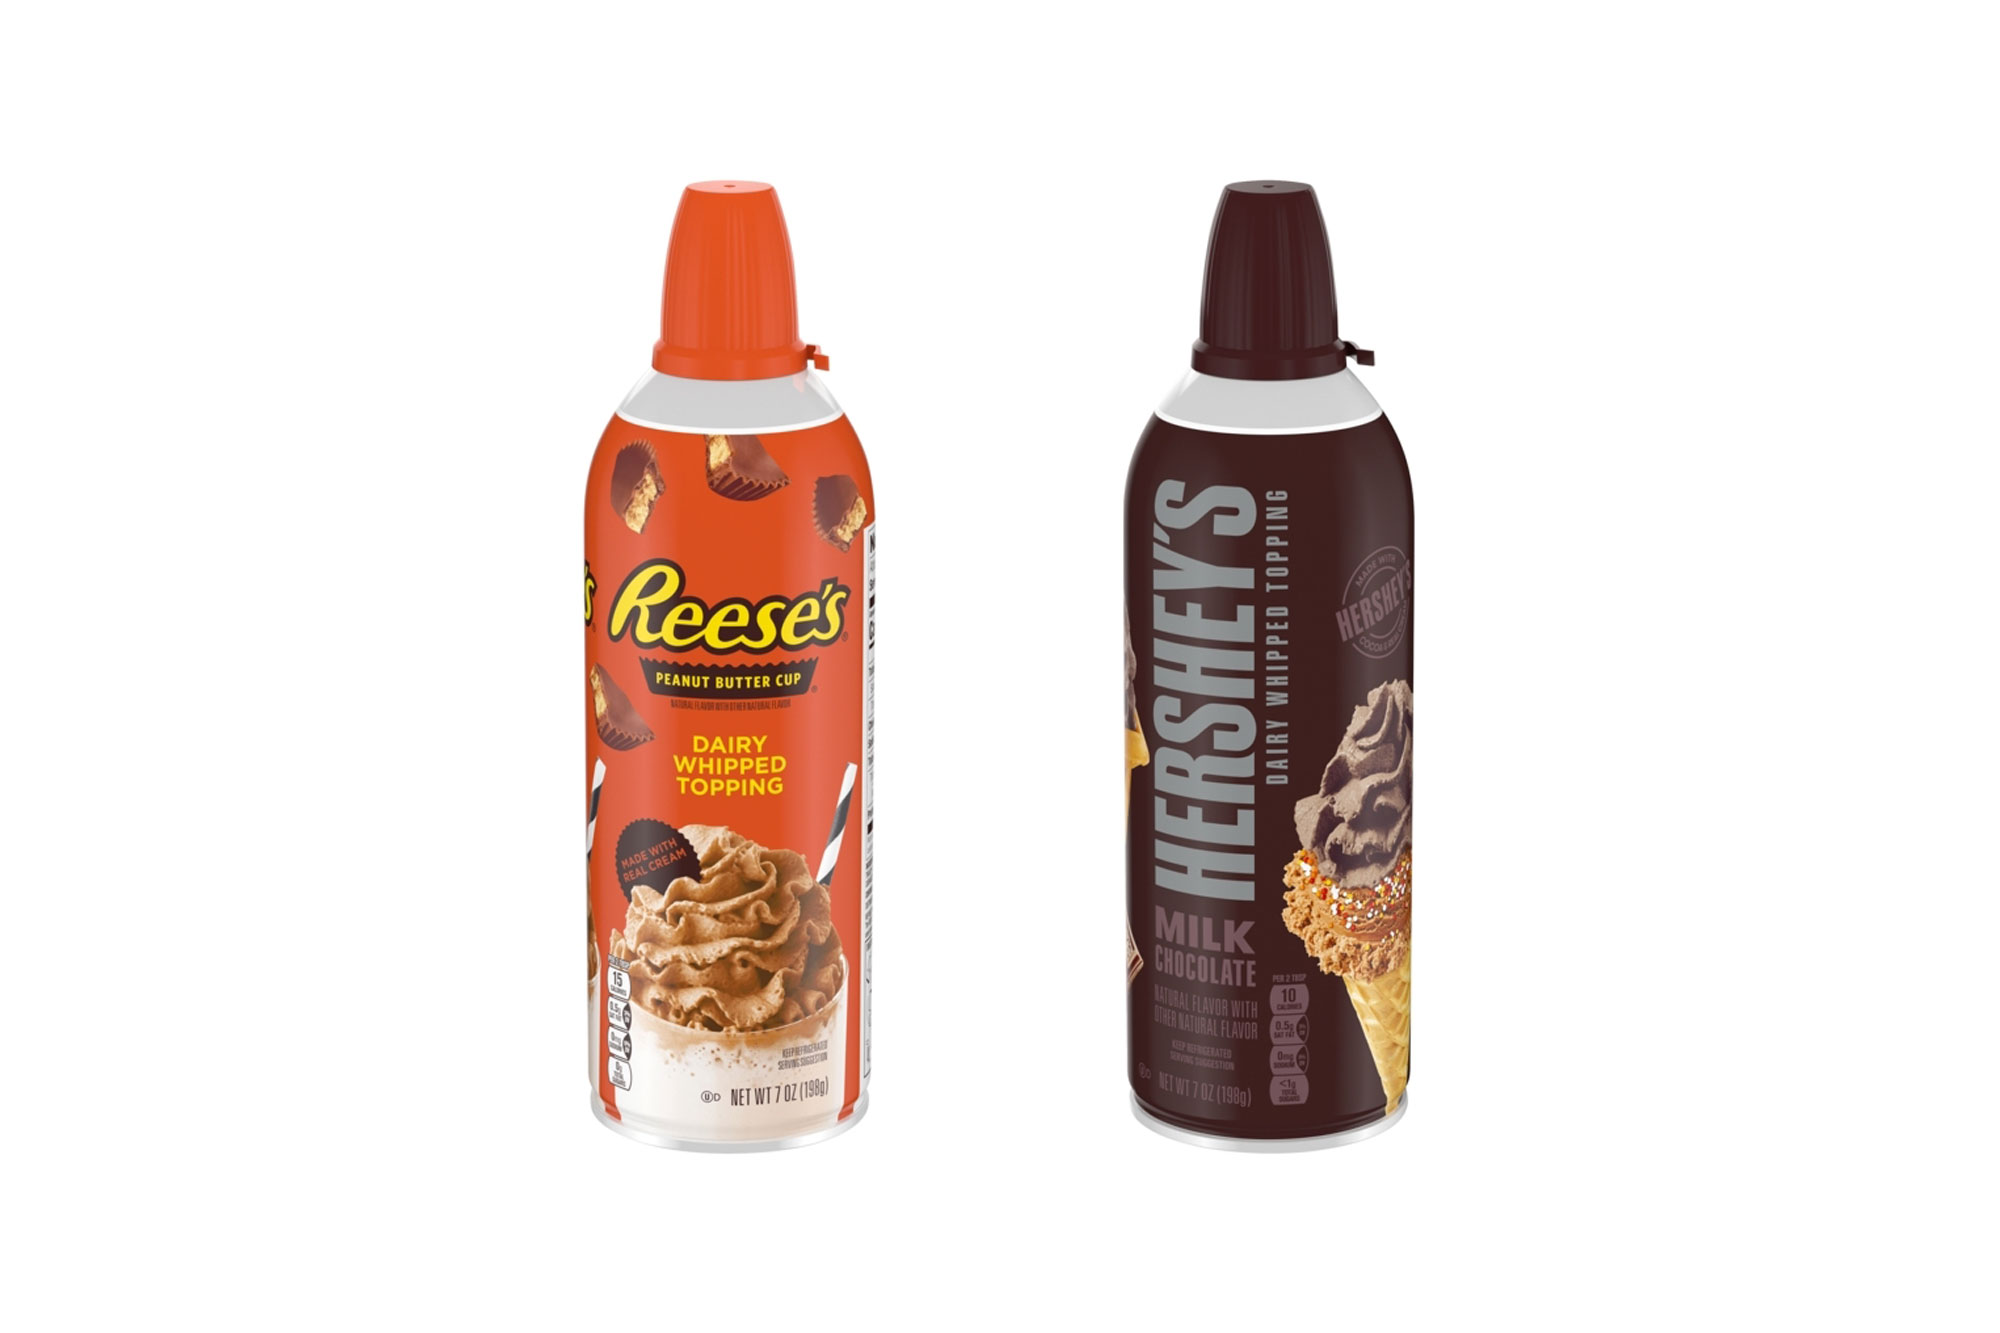 Hershey's Milk Chocolate and Reese's Peanut Butter Cup Whipped Cream Cans Are Now Available